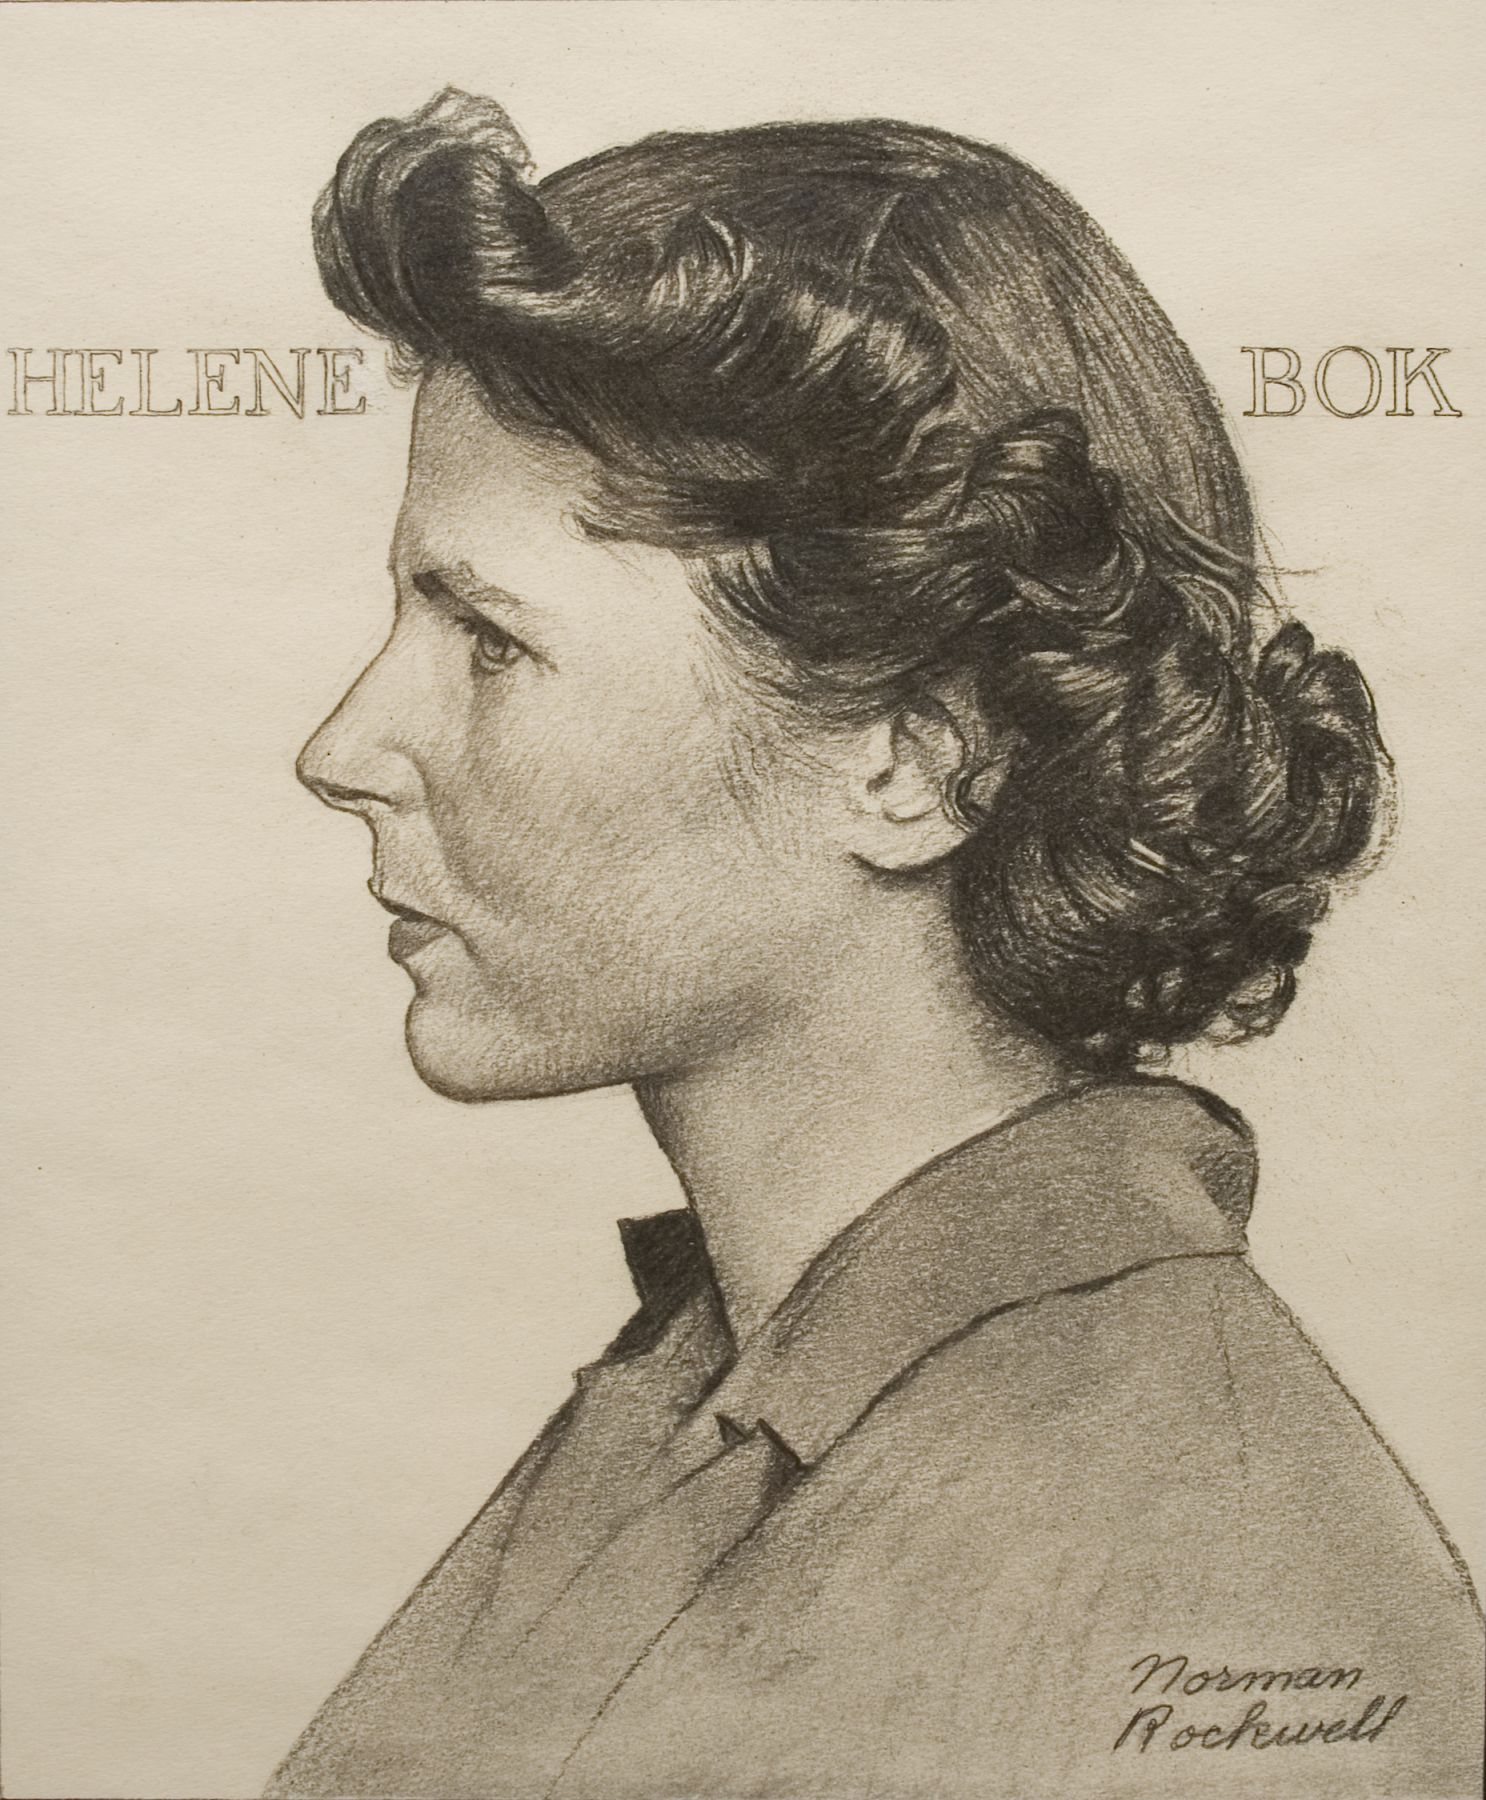 Norman Rockwell, Portrait of Helene Bok, c. 1944, pencil on paper, 14 x 11 inches